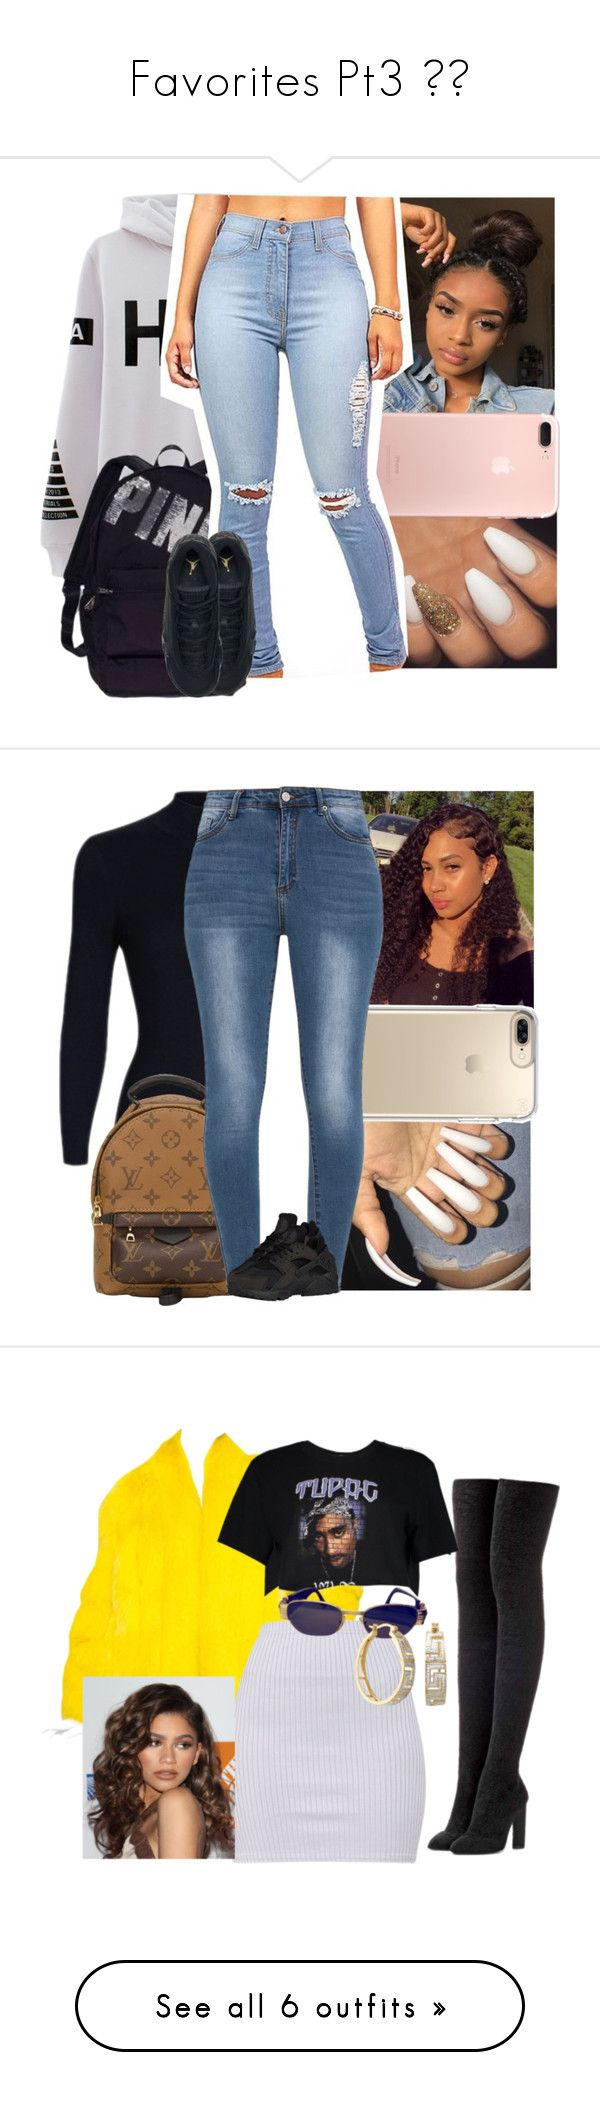 """""""Favorites Pt3 """" by sashalovesyou123 ❤ liked on Polyvore featuring VFiles, Victoria's Secret, Speck, Louis Vuitton, NIKE, Saga Furs, adidas Originals, Boohoo, Versace and Coleman"""